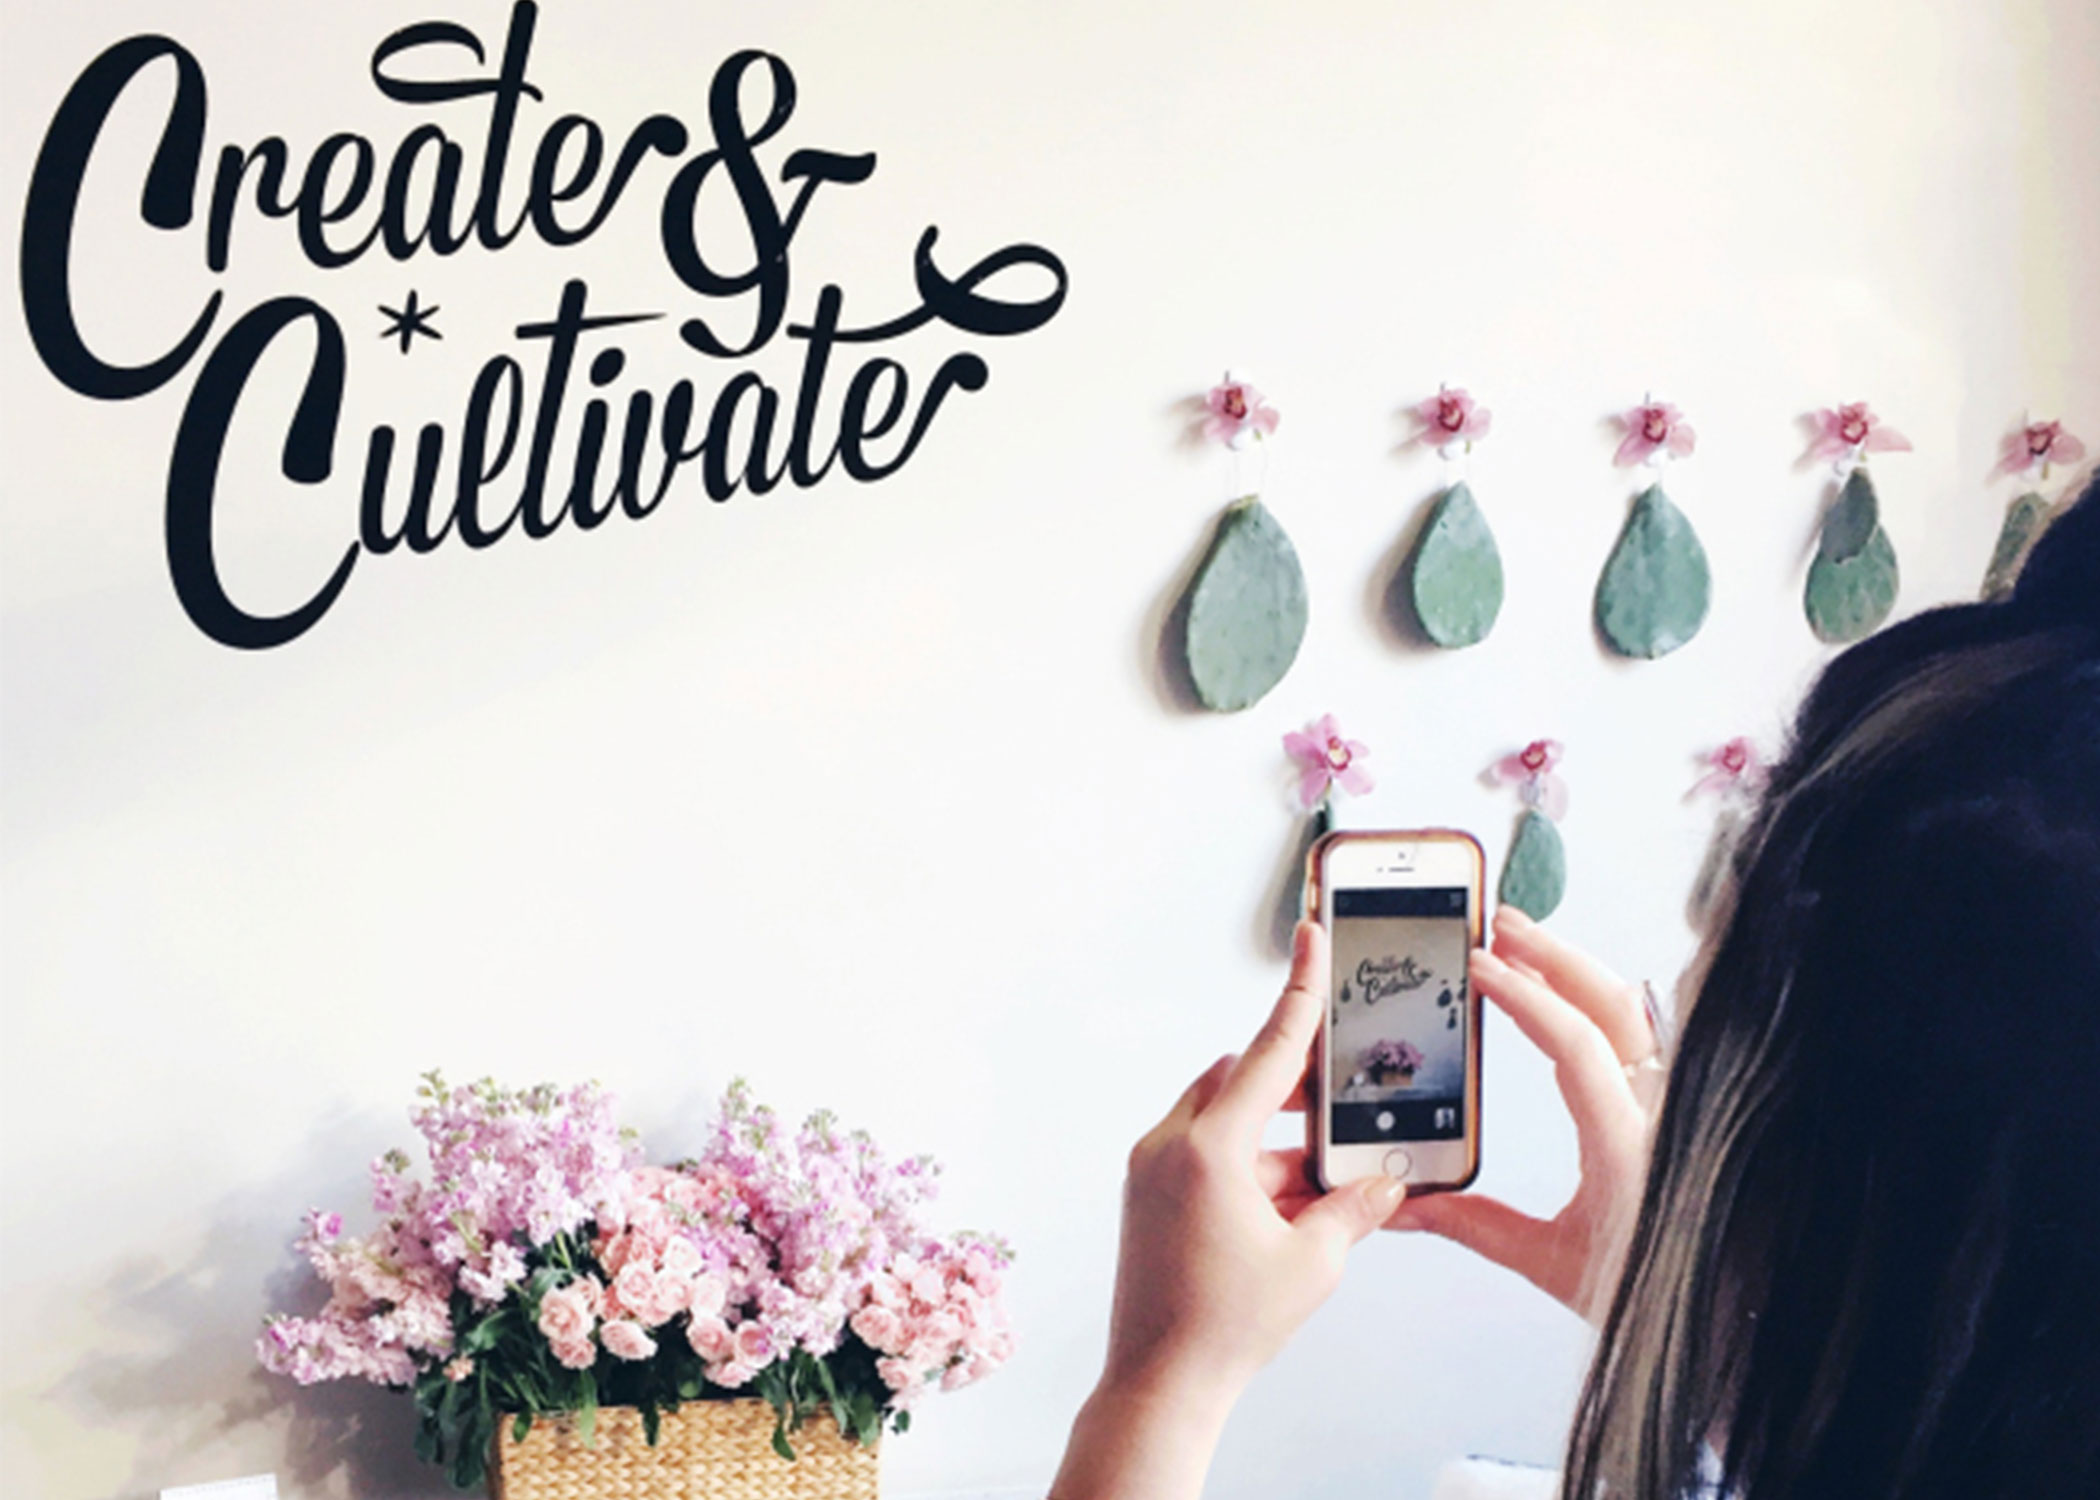 calling all my creatives + bloggers - Category: Career & WorkRead Time: 3 minutes